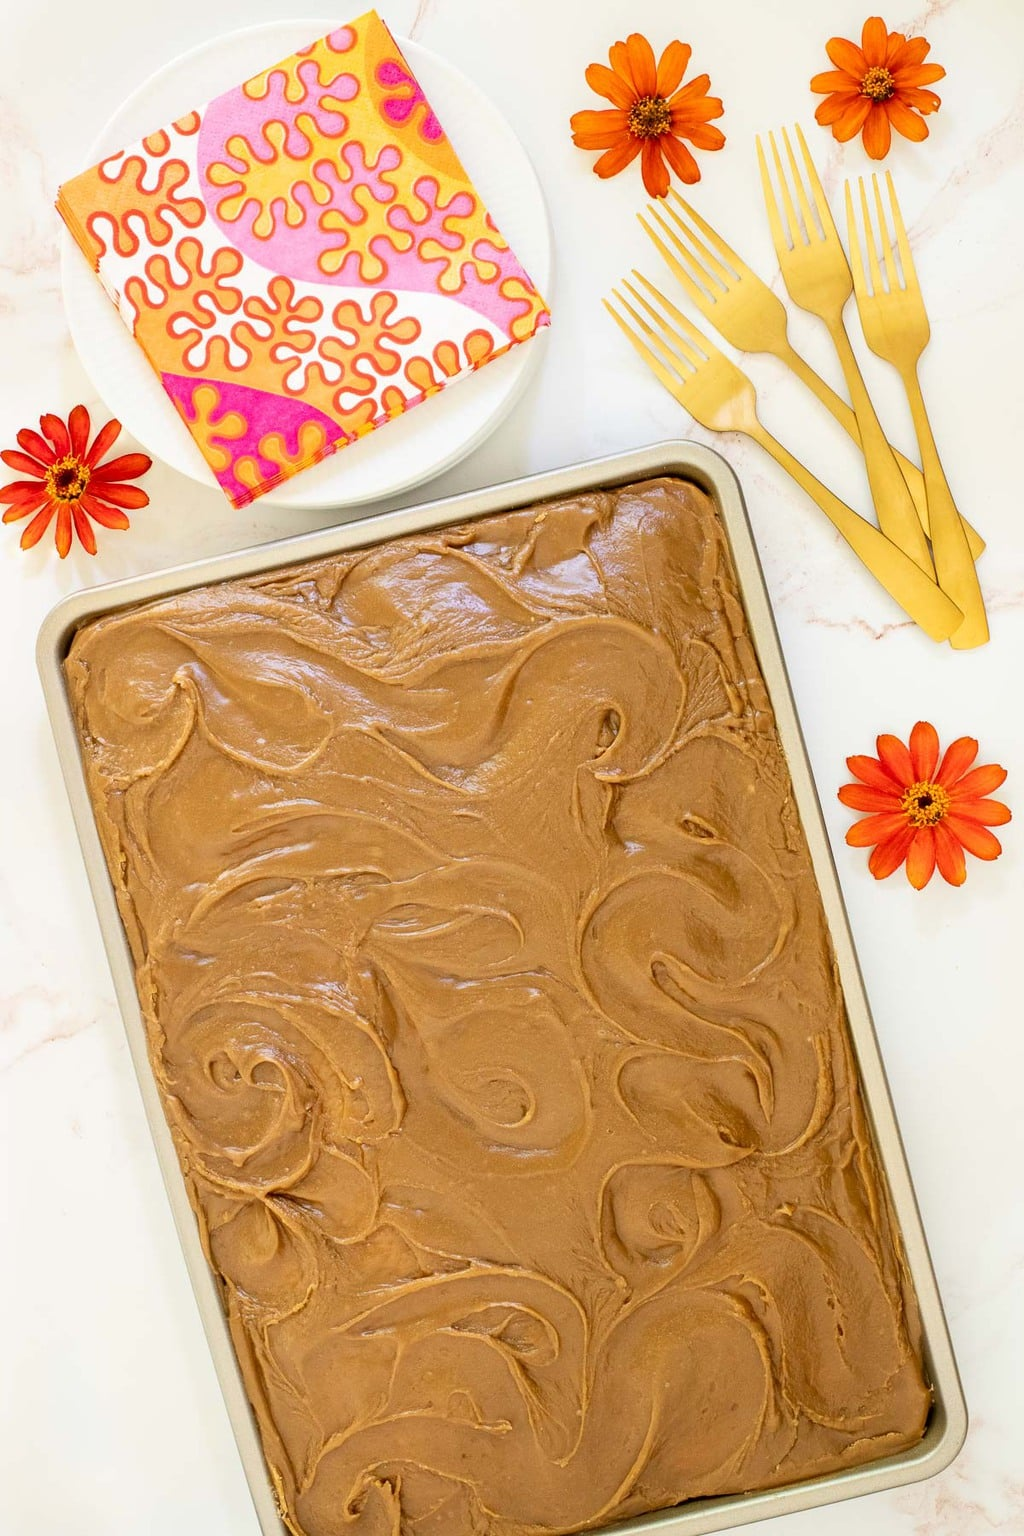 Vertical overhead photo of a Ridiculously Easy Caramel Buttermilk Sheet Cake on a white marble surface surrounded by orange zinnia flowers.